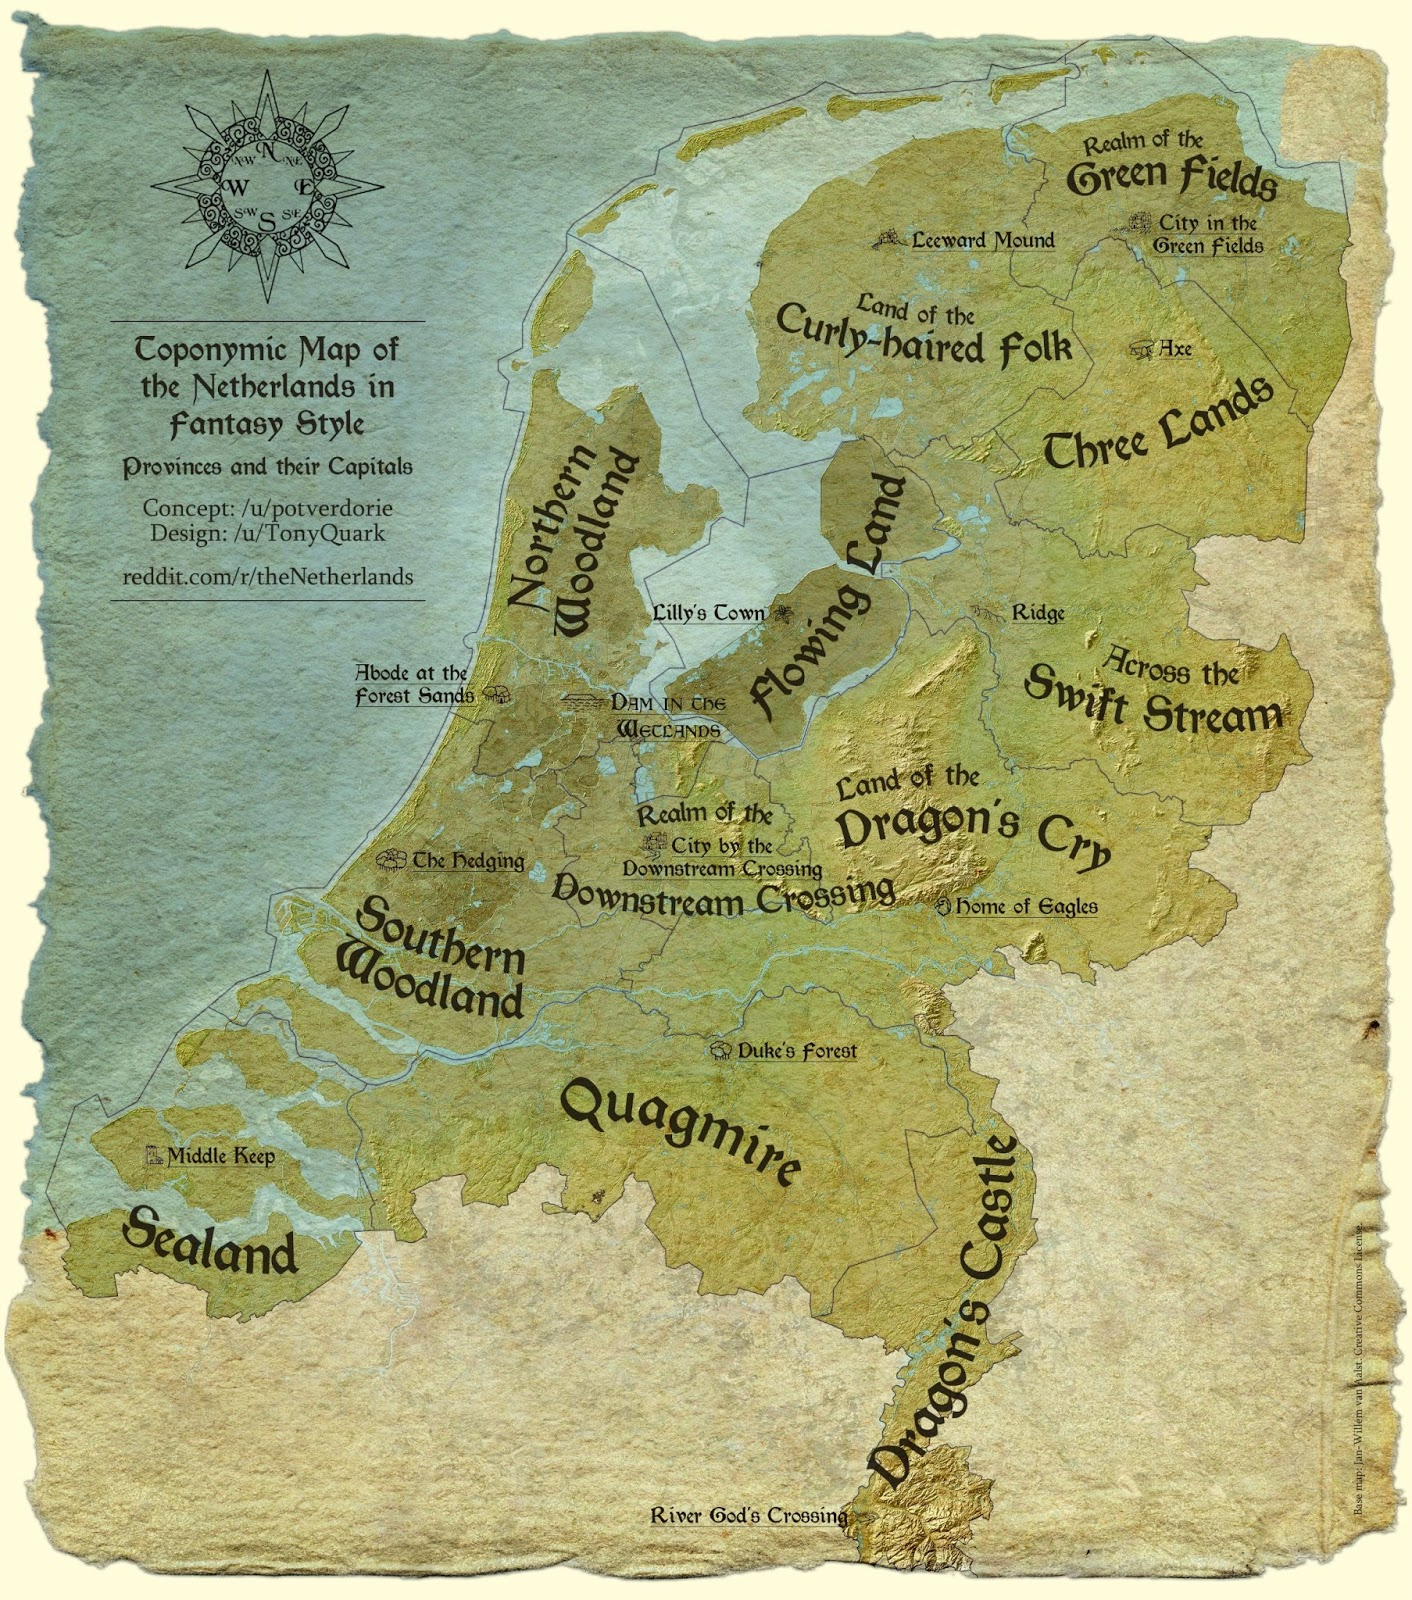 Toponymic map of the Netherlands in Fantasy style